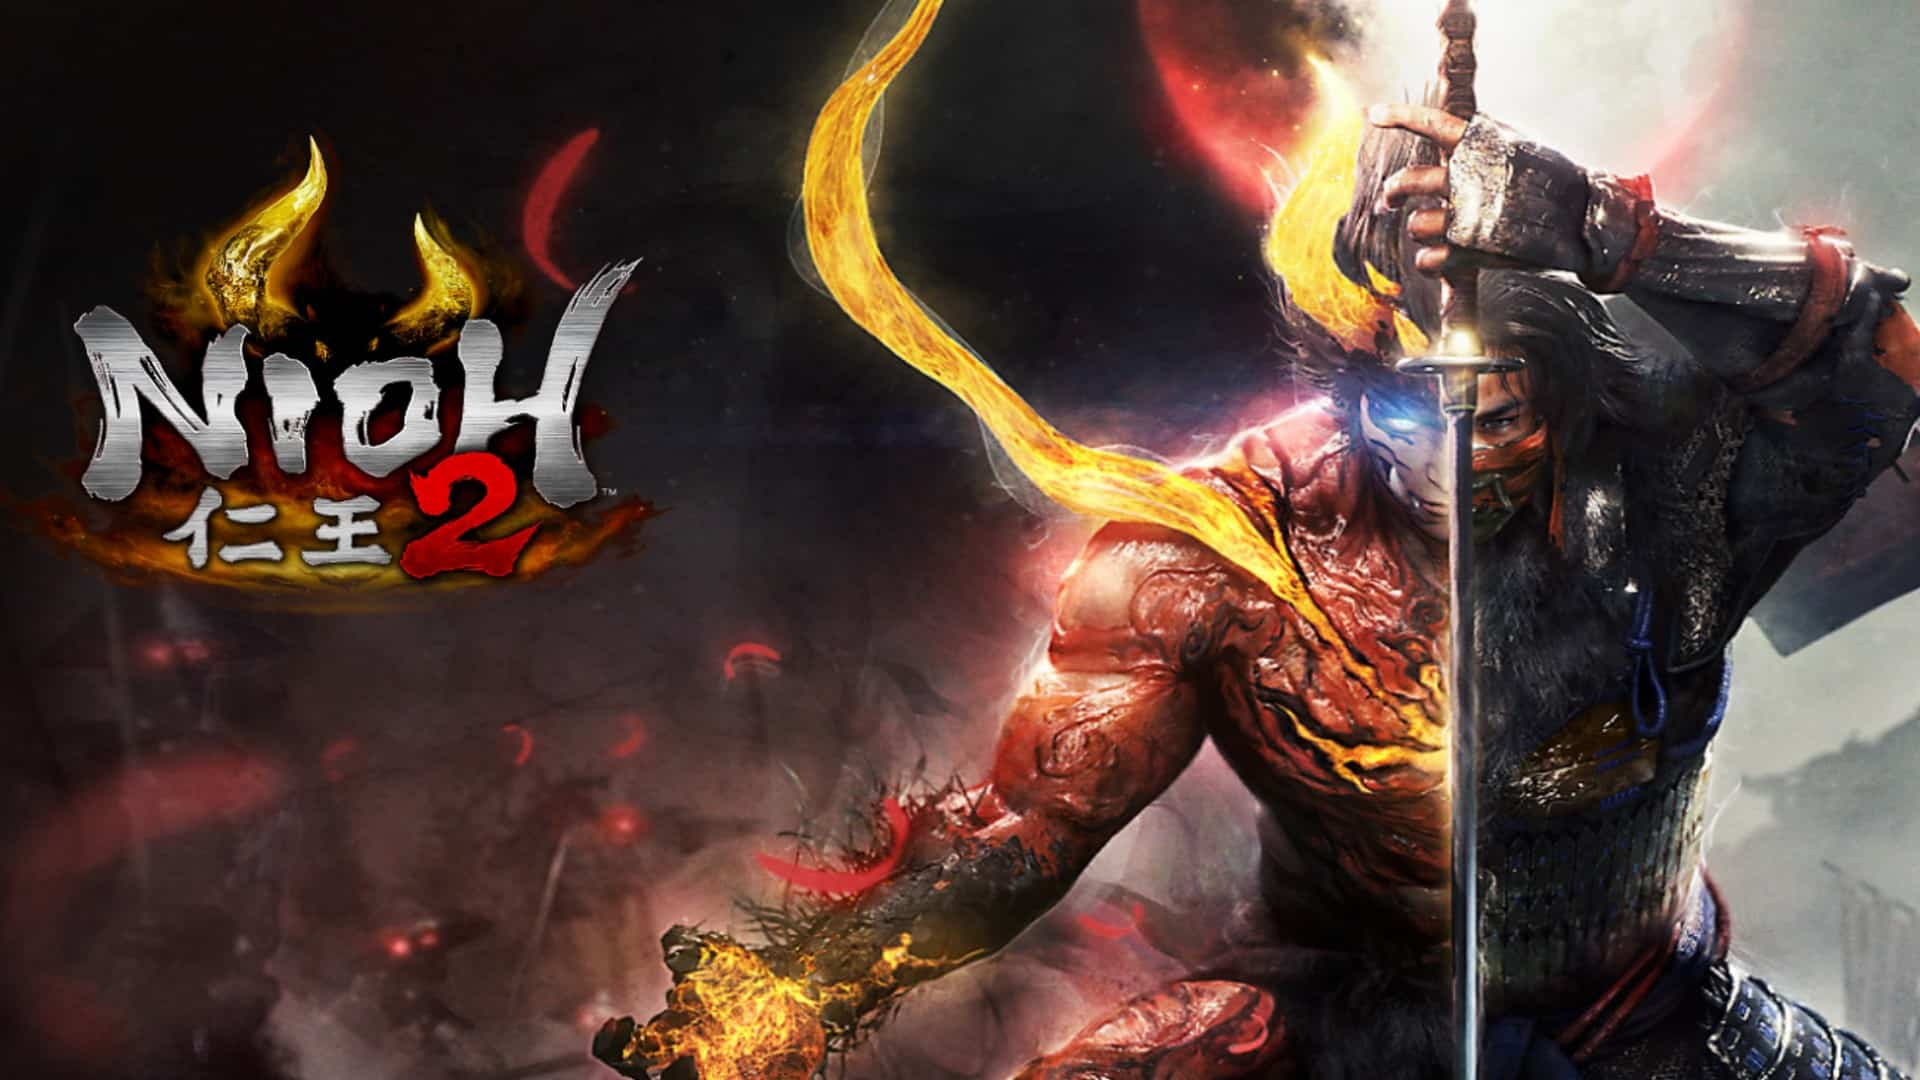 Nioh 2 Release Date Announced, Special Editions Revealed, New Open Beta  Goes Live This Week | MKAU Gaming